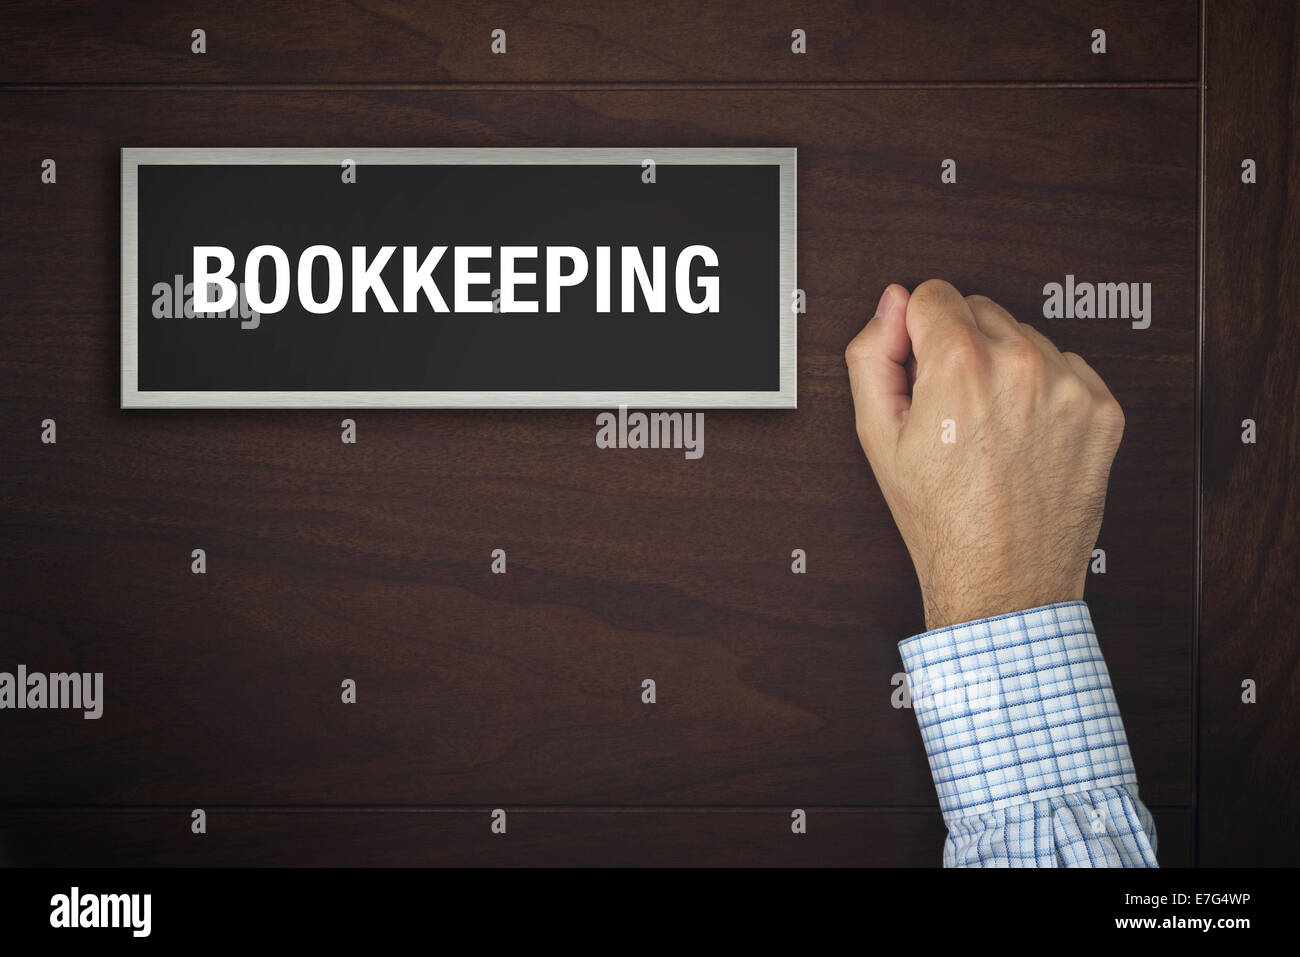 Businessman knocking on Bookkeeping office door looking for a business service - Stock Image